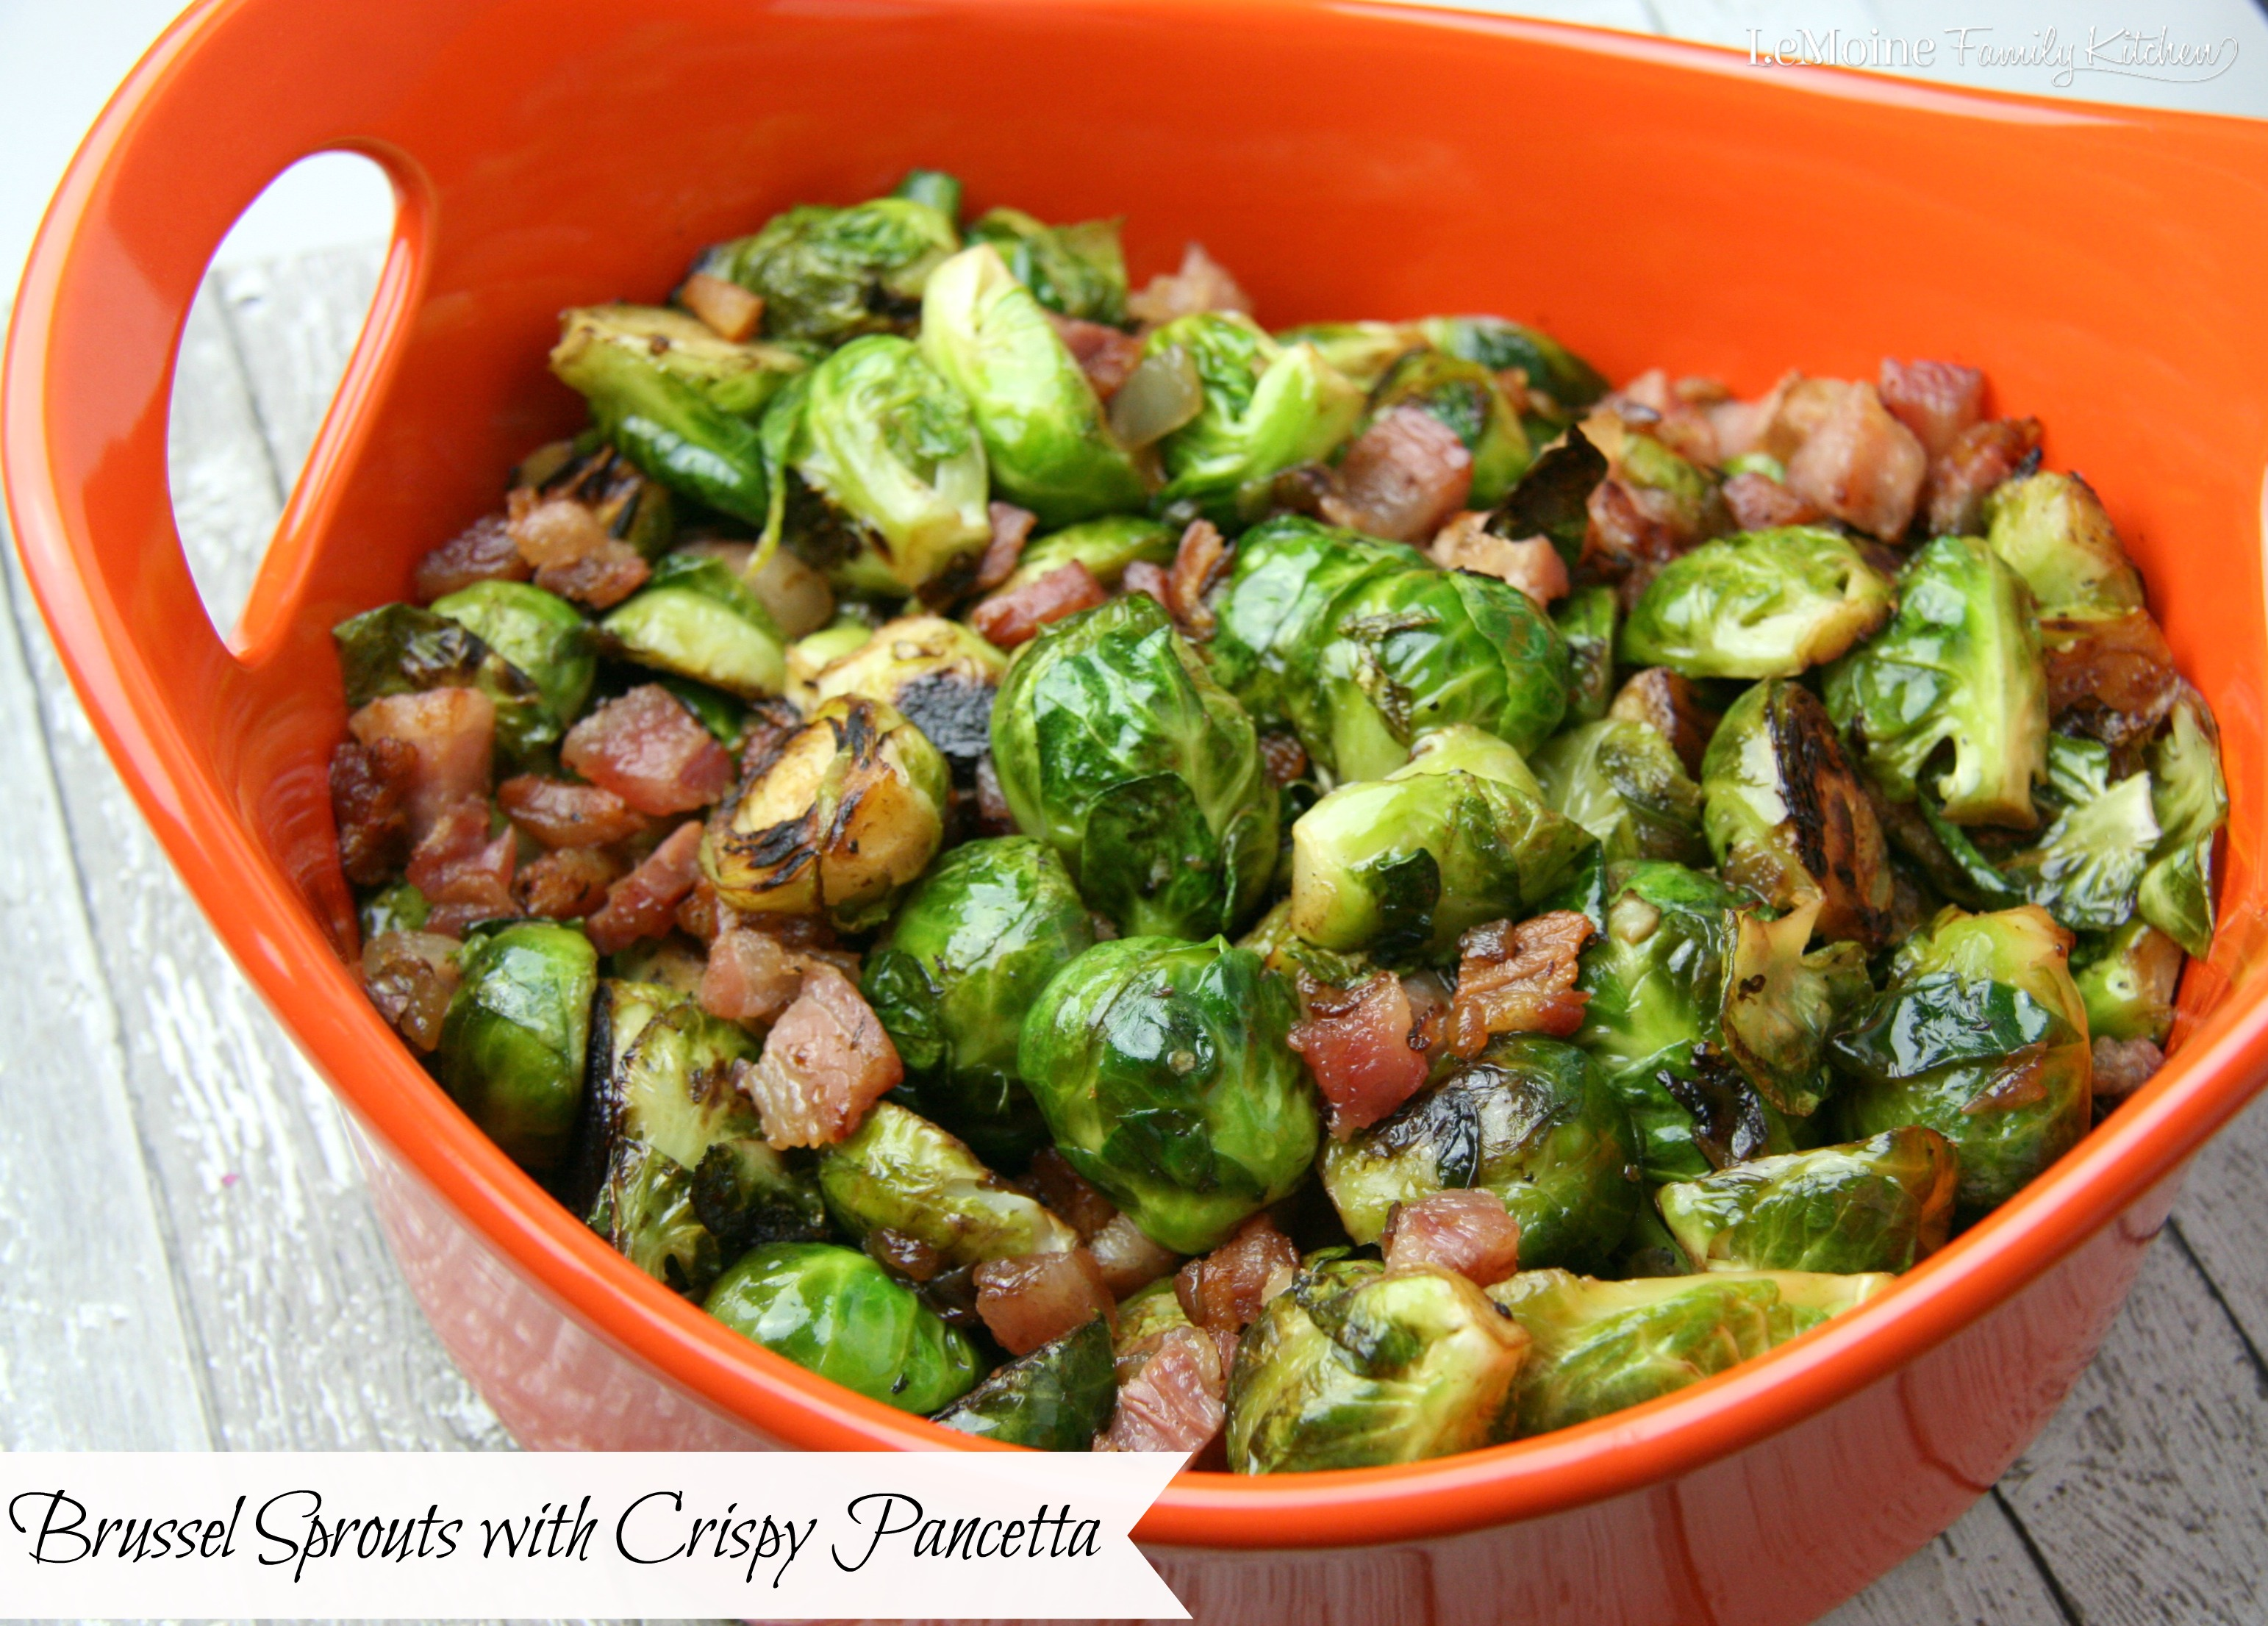 Brussel Sprouts with Crispy Pancetta | LeMoine Family Kitchen . The BEST brussel sprouts and they are so easy to make! Amazing flavor! Great side dish.